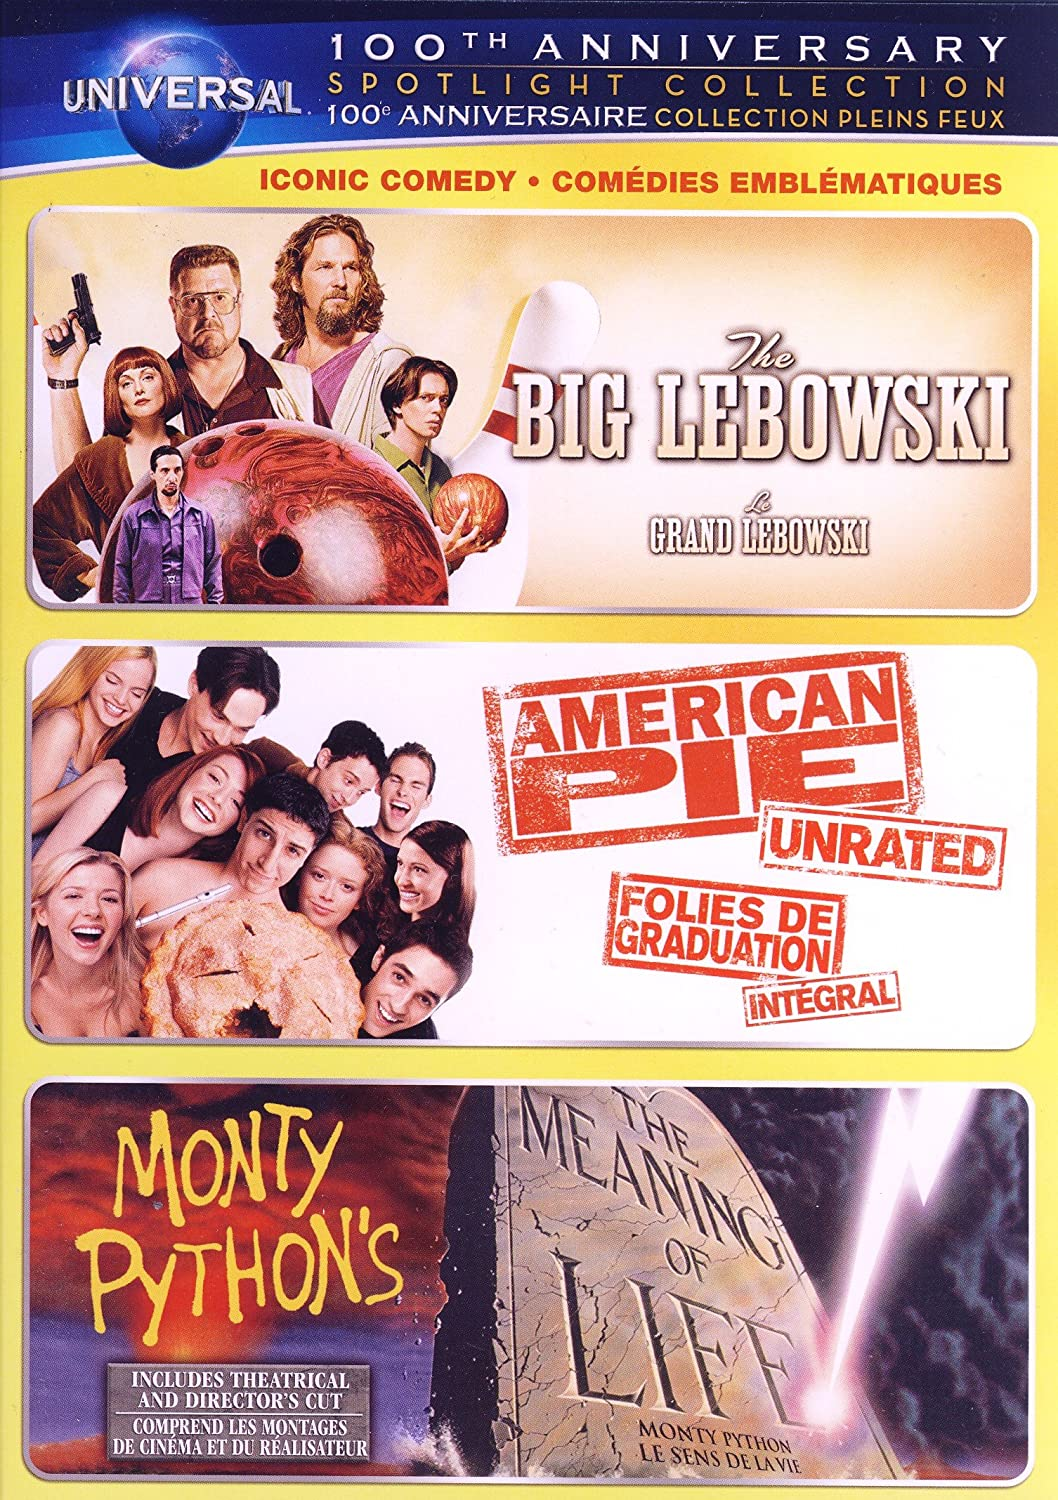 Amazon.com: Iconic Comedy Spotlight Collection (The Big Lebowski / American  Pie / Monty Python's The Meaning of Life) (Universal's 100th Anniversary ...